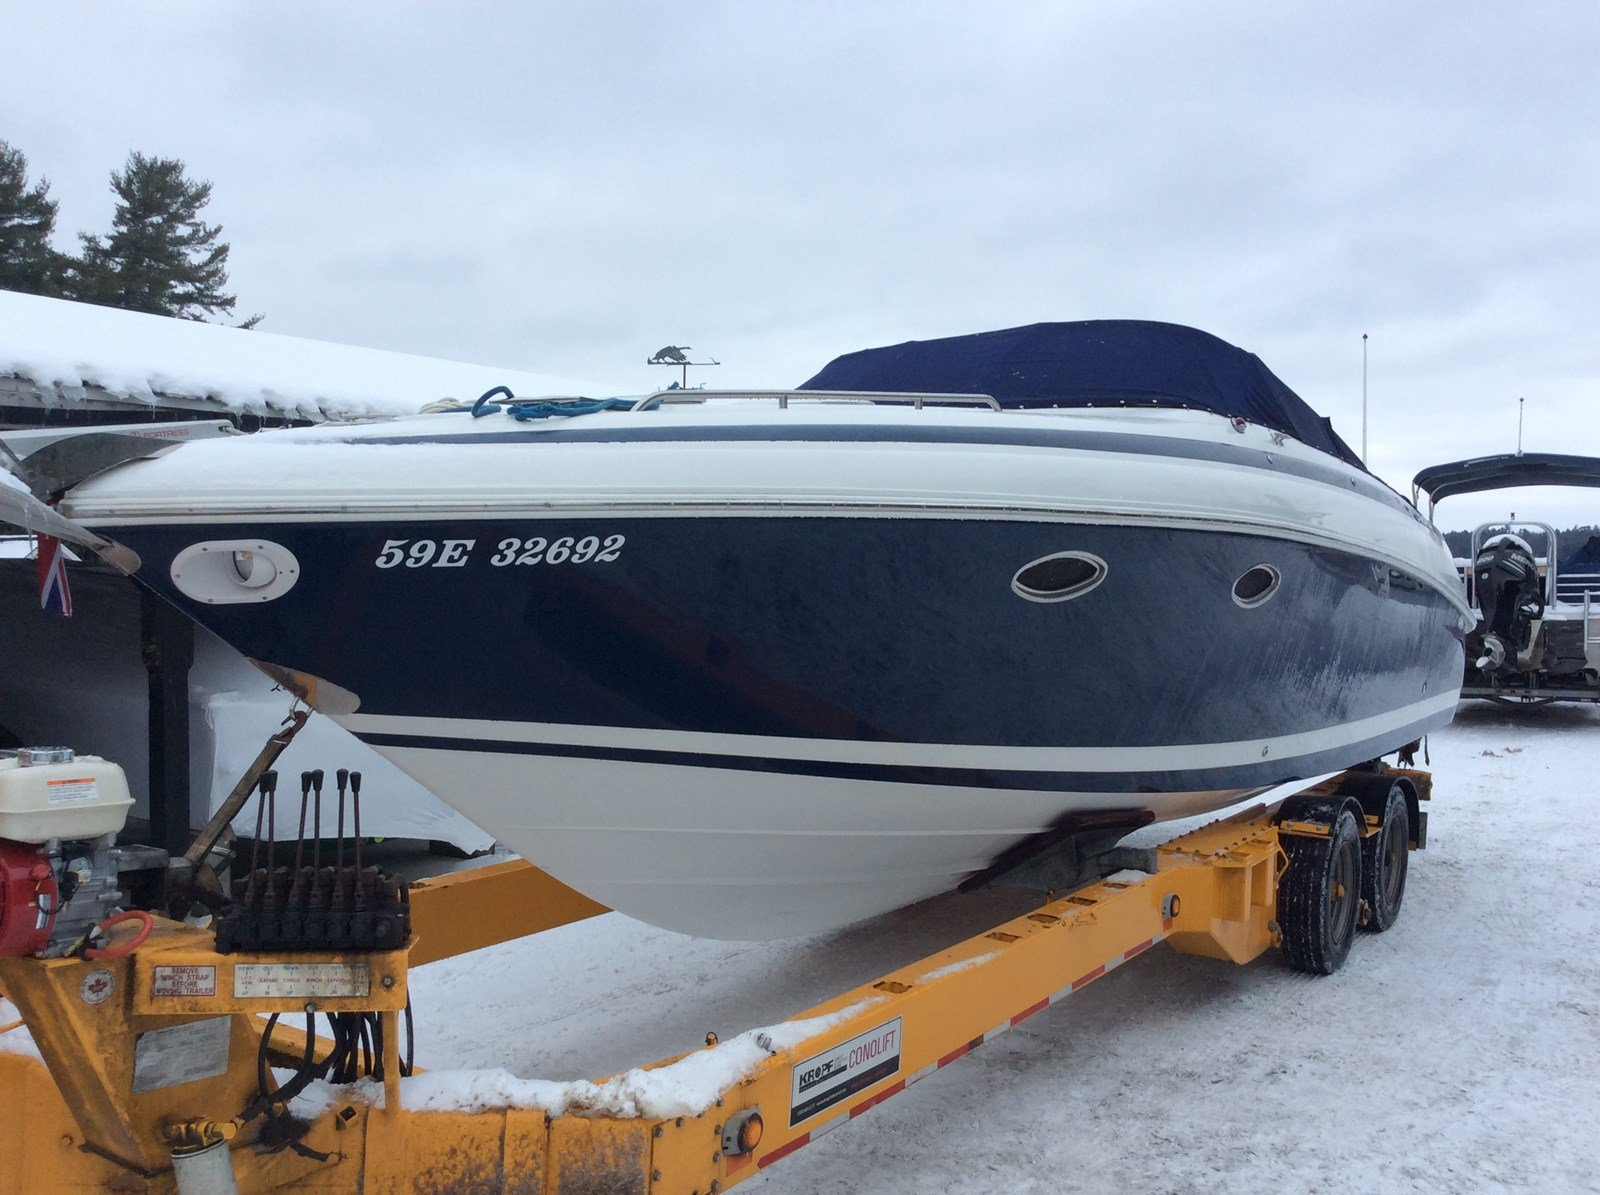 Pre-Owned 2000 Cobalt 293 TWIN MERCRUISER - AC/HEATING - MICROWAVE